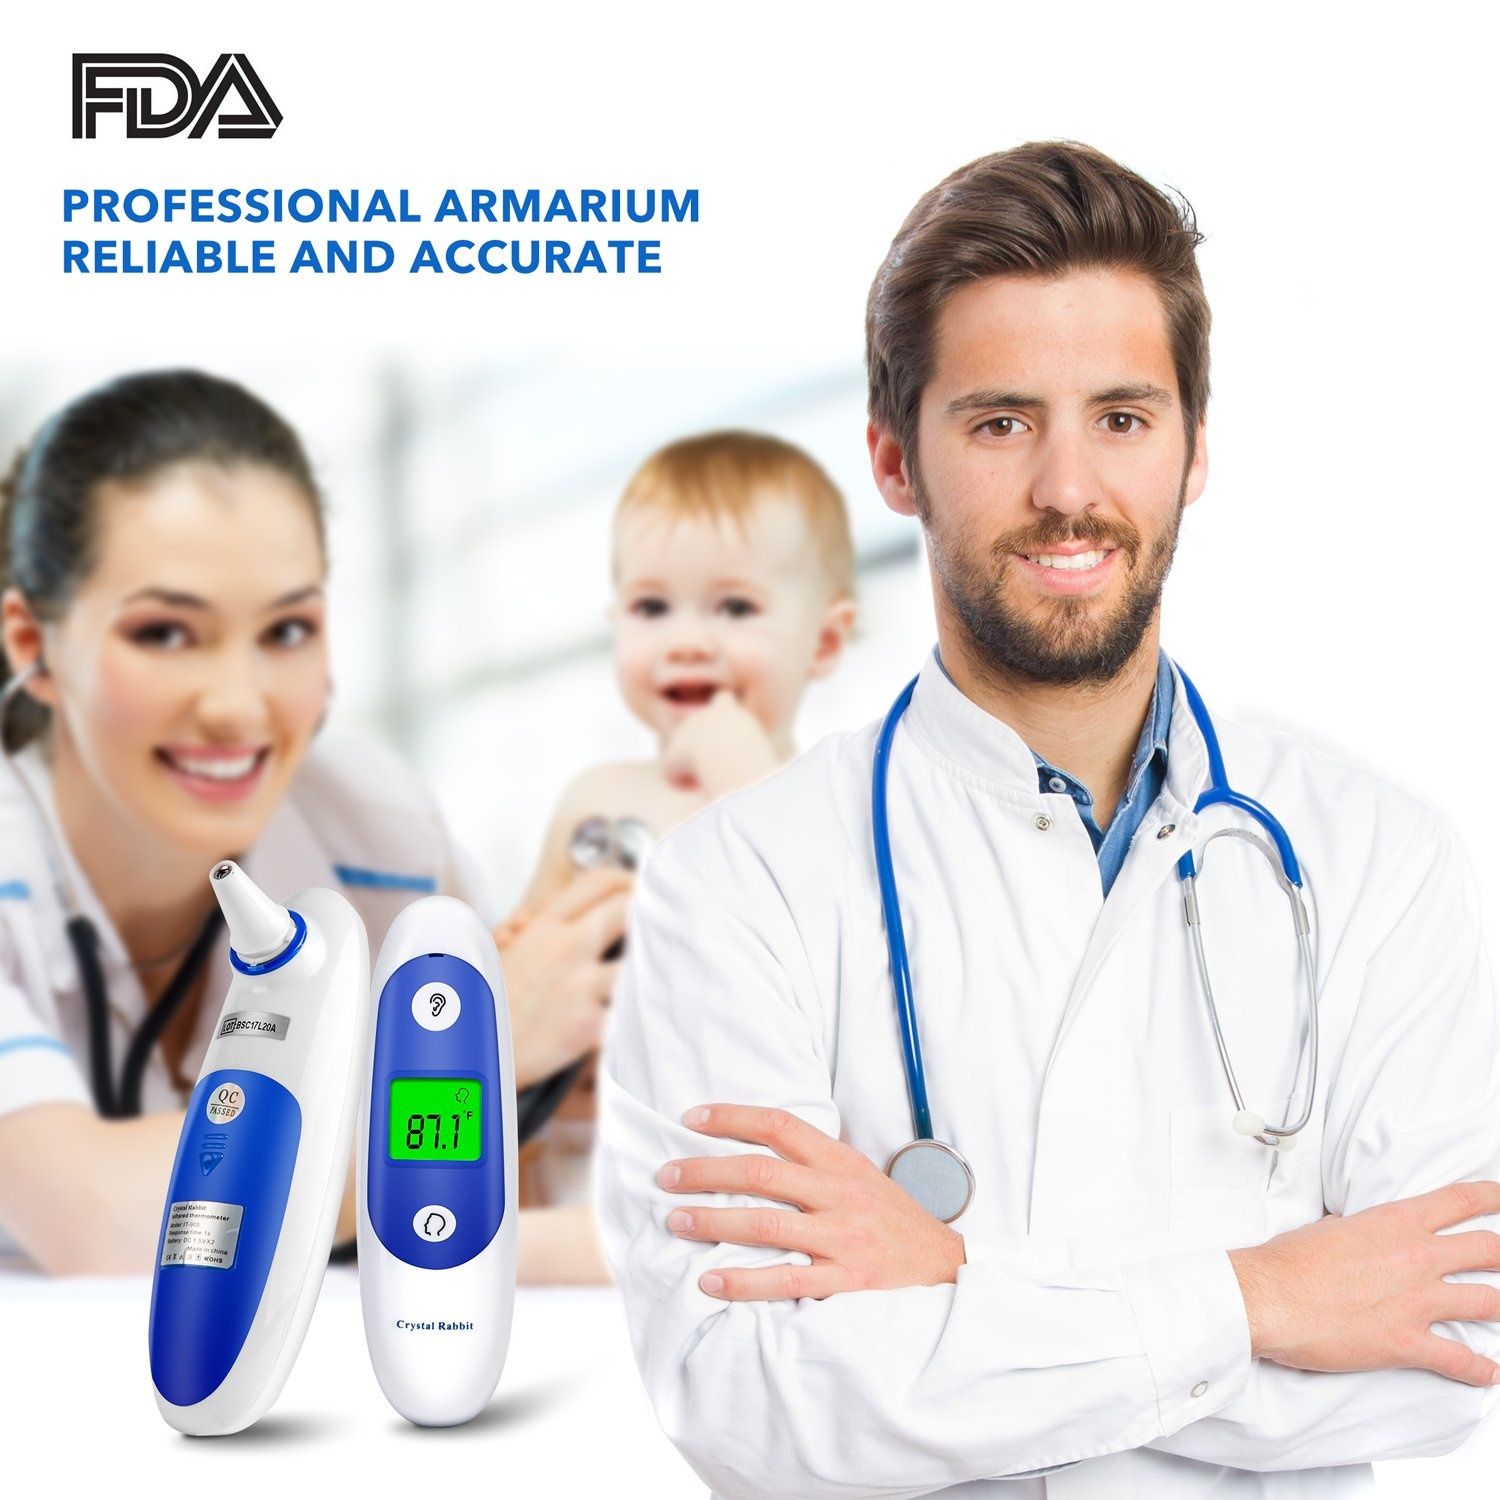 Medical Forehead and Ear Thermometer, Crystal Rabbit Infrared Digital  Thermometer Suitable For